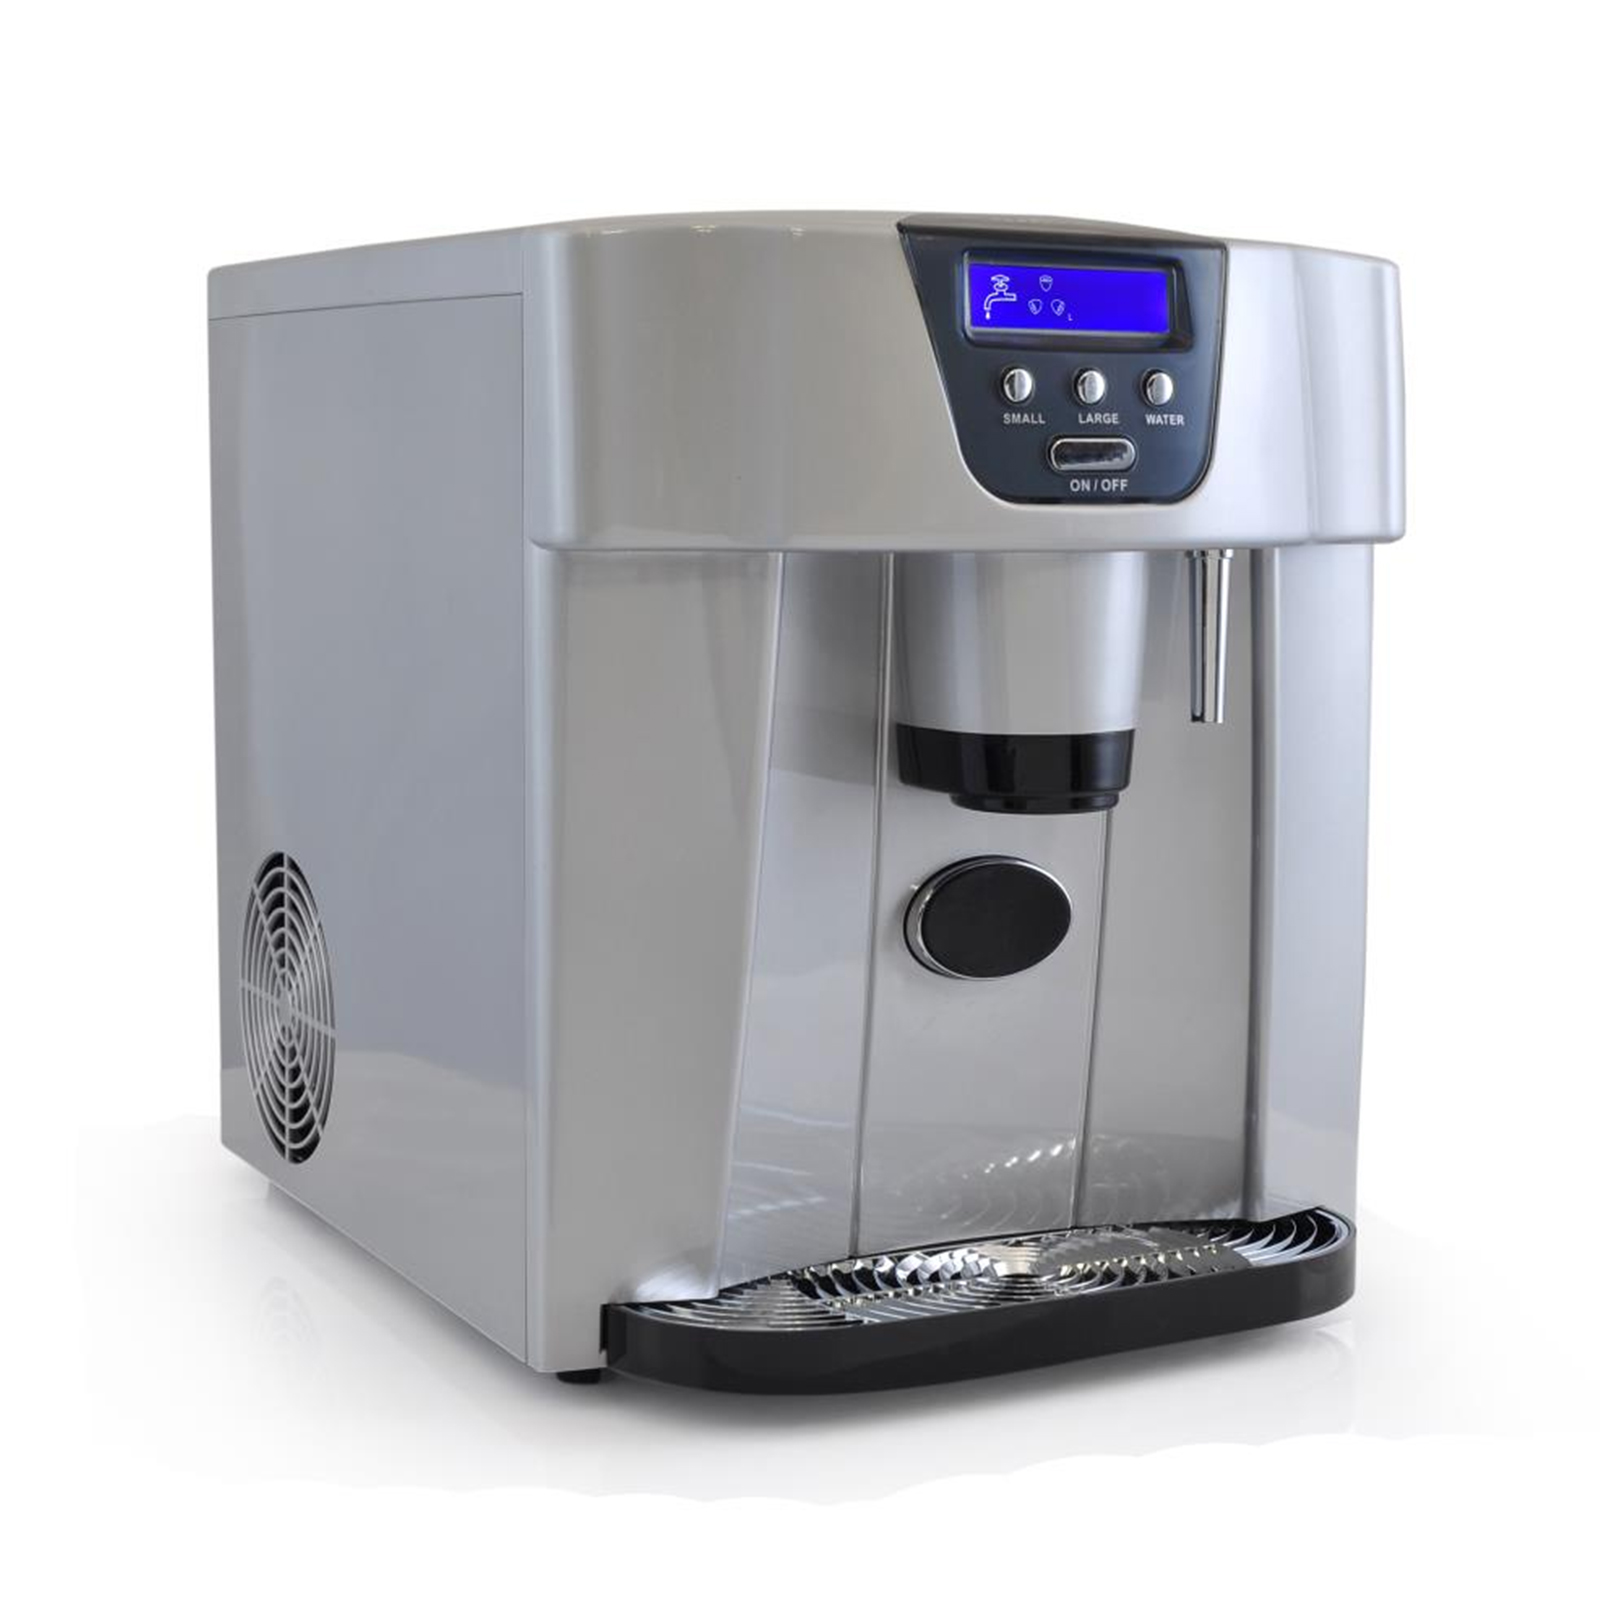 Nutrichef Ice Maker & Dispenser, Countertop Ice Cube Making Machine (2 Sizes of Ice Cubes)